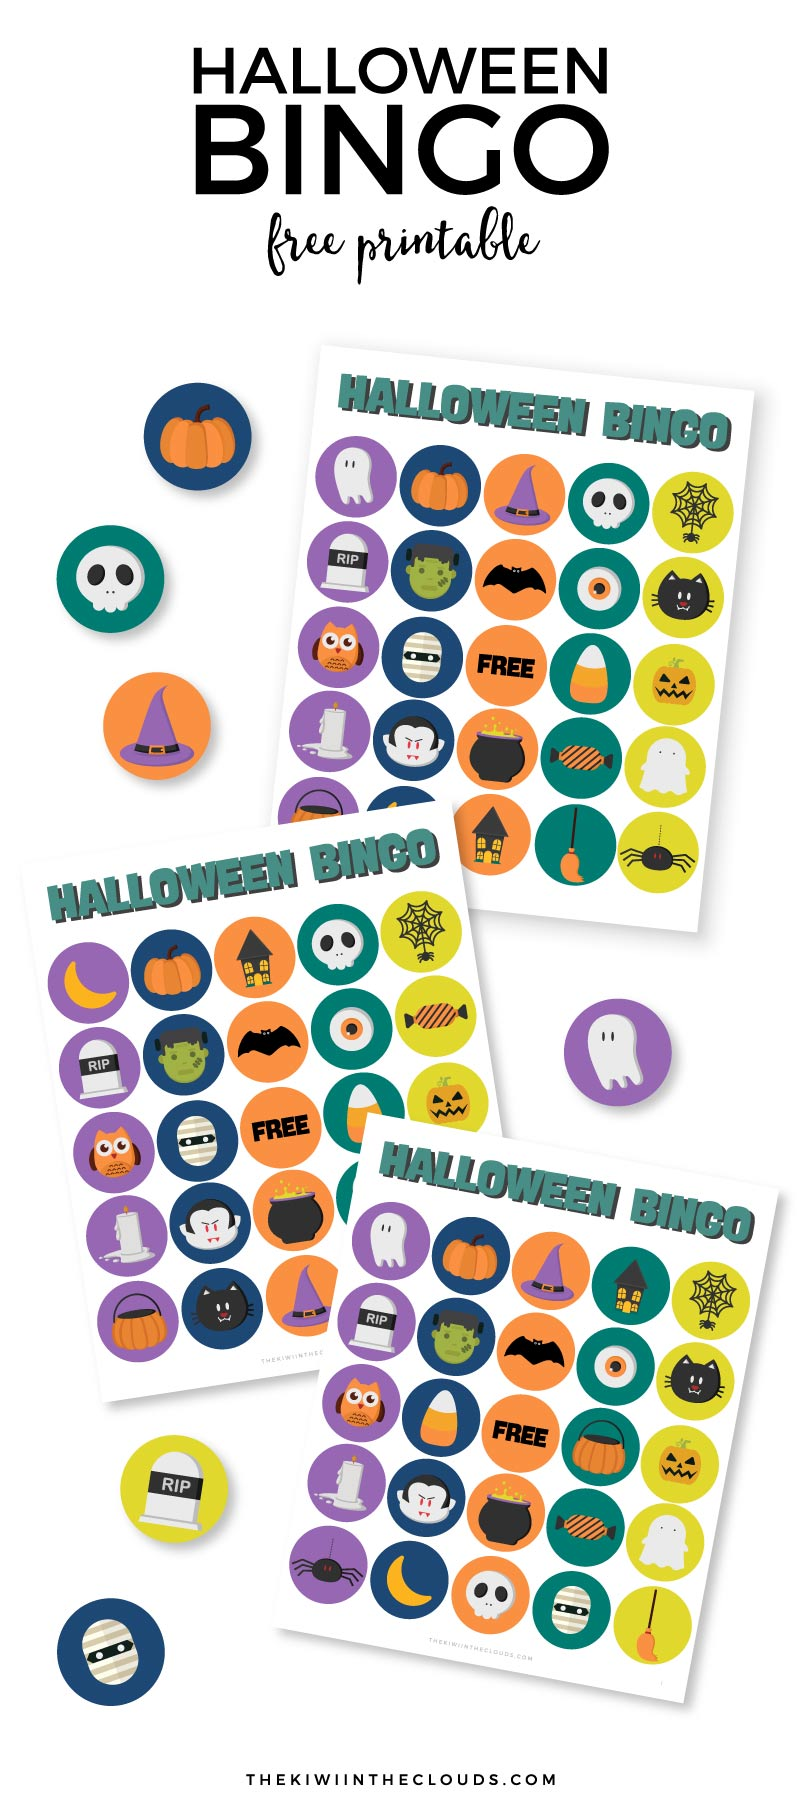 graphic regarding Printable Bingo Cards for Kids named The Great Halloween Bingo Playing cards for Little ones (No cost Printable)